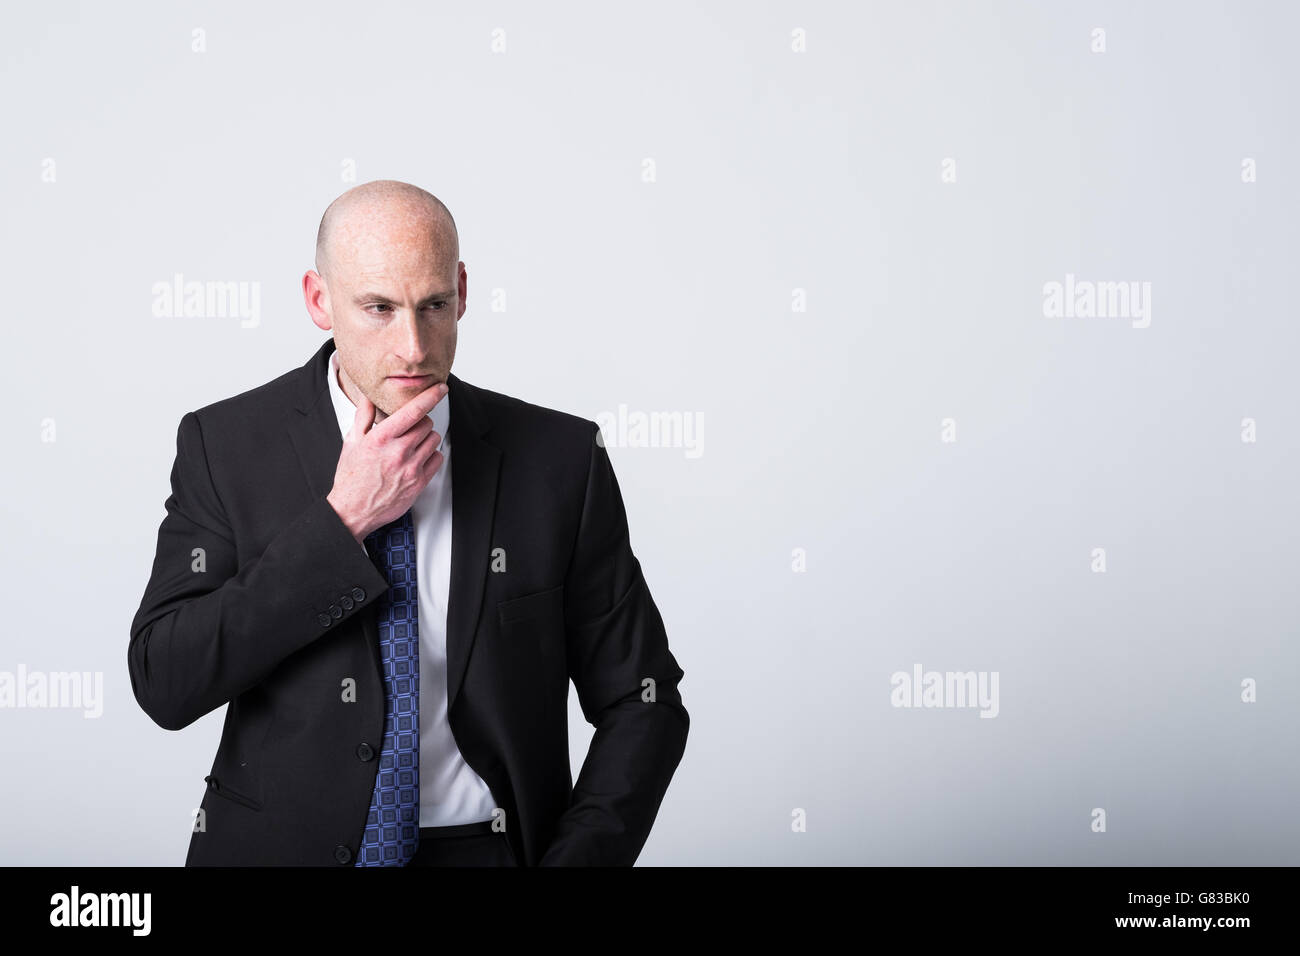 Problem solving, balding business man in a suit and tie looking thoughtful - Stock Image